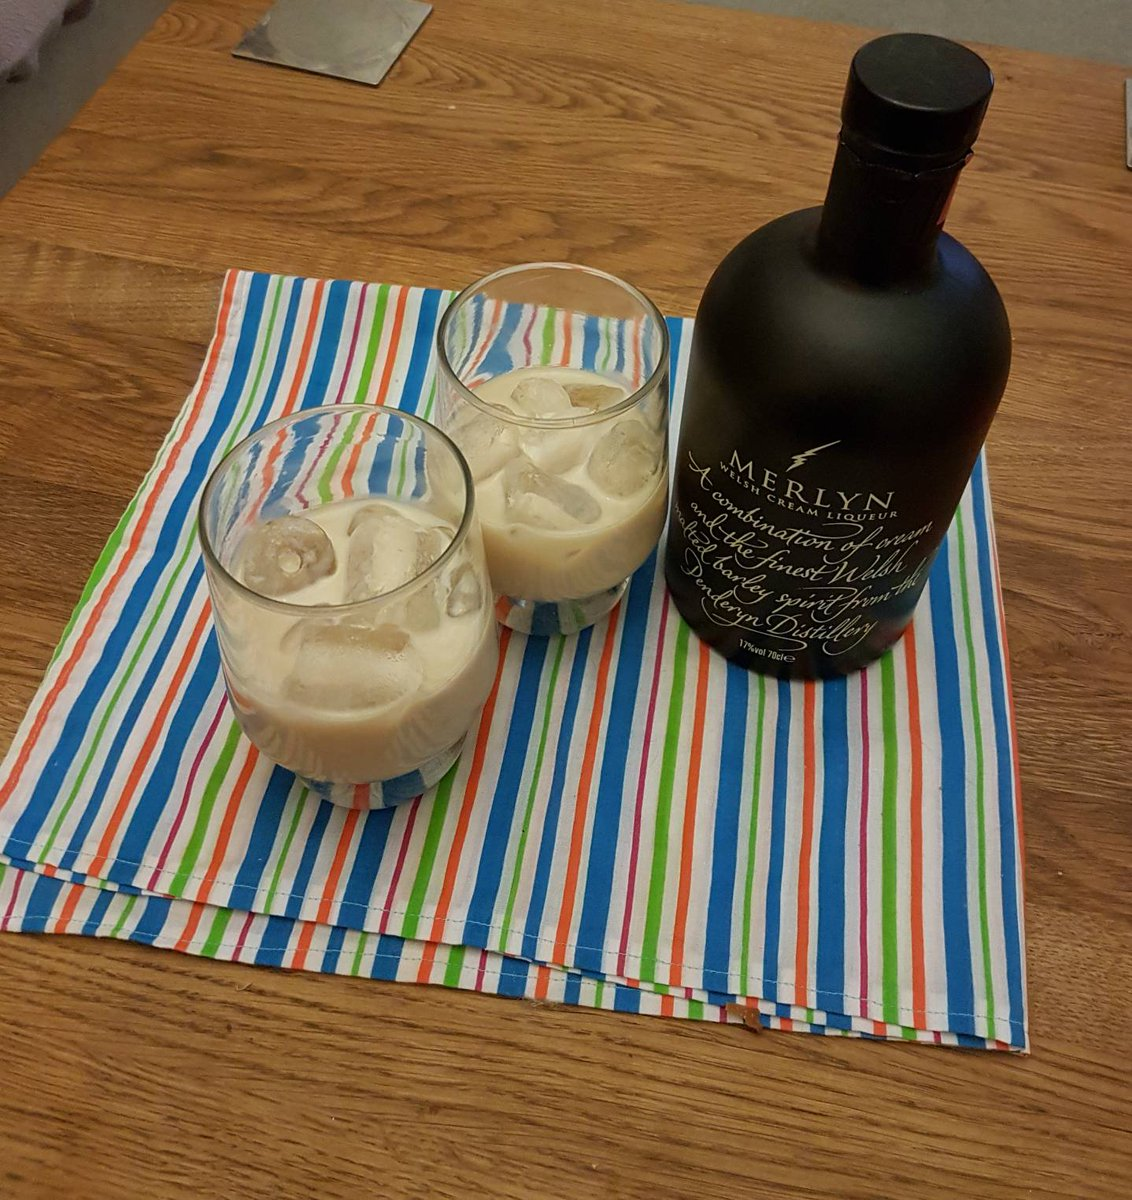 A little drink after a busy day ( a pressy for my birthday)! #sewinglessons #laugh #enjoy #learn  Next lesson is  http://www. spanglies.co.uk/product/beginn ers-adult-sewing-lessons-19th-october/ &nbsp; … <br>http://pic.twitter.com/3xgpSLTGWR